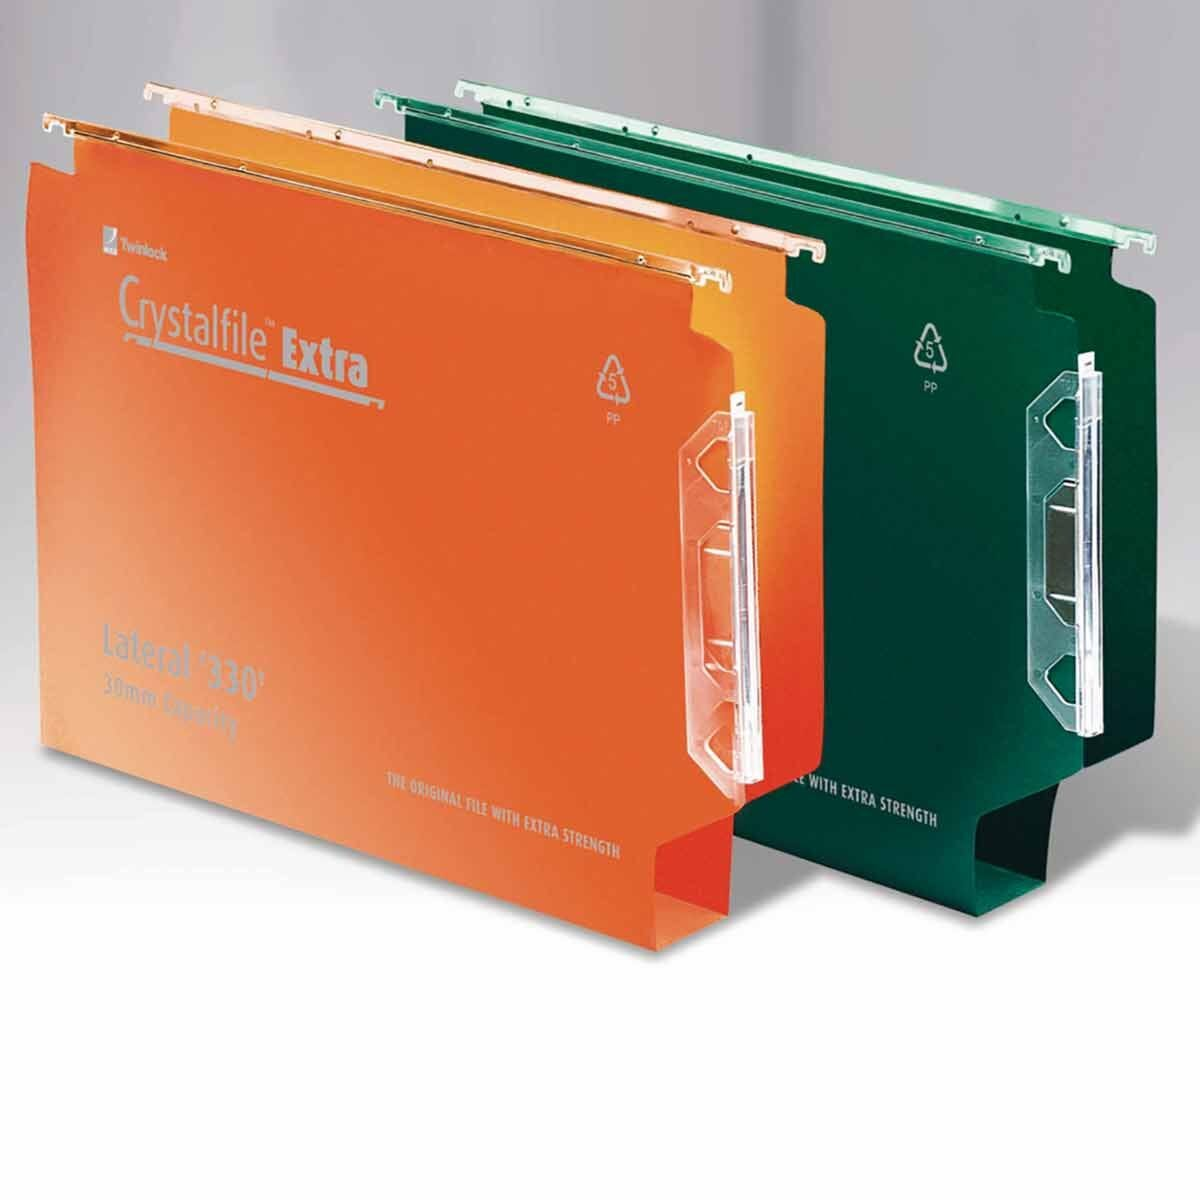 Rexel Crystalfile Extra 330 Lateral Suspension File 30mm Pack of 25 Orange